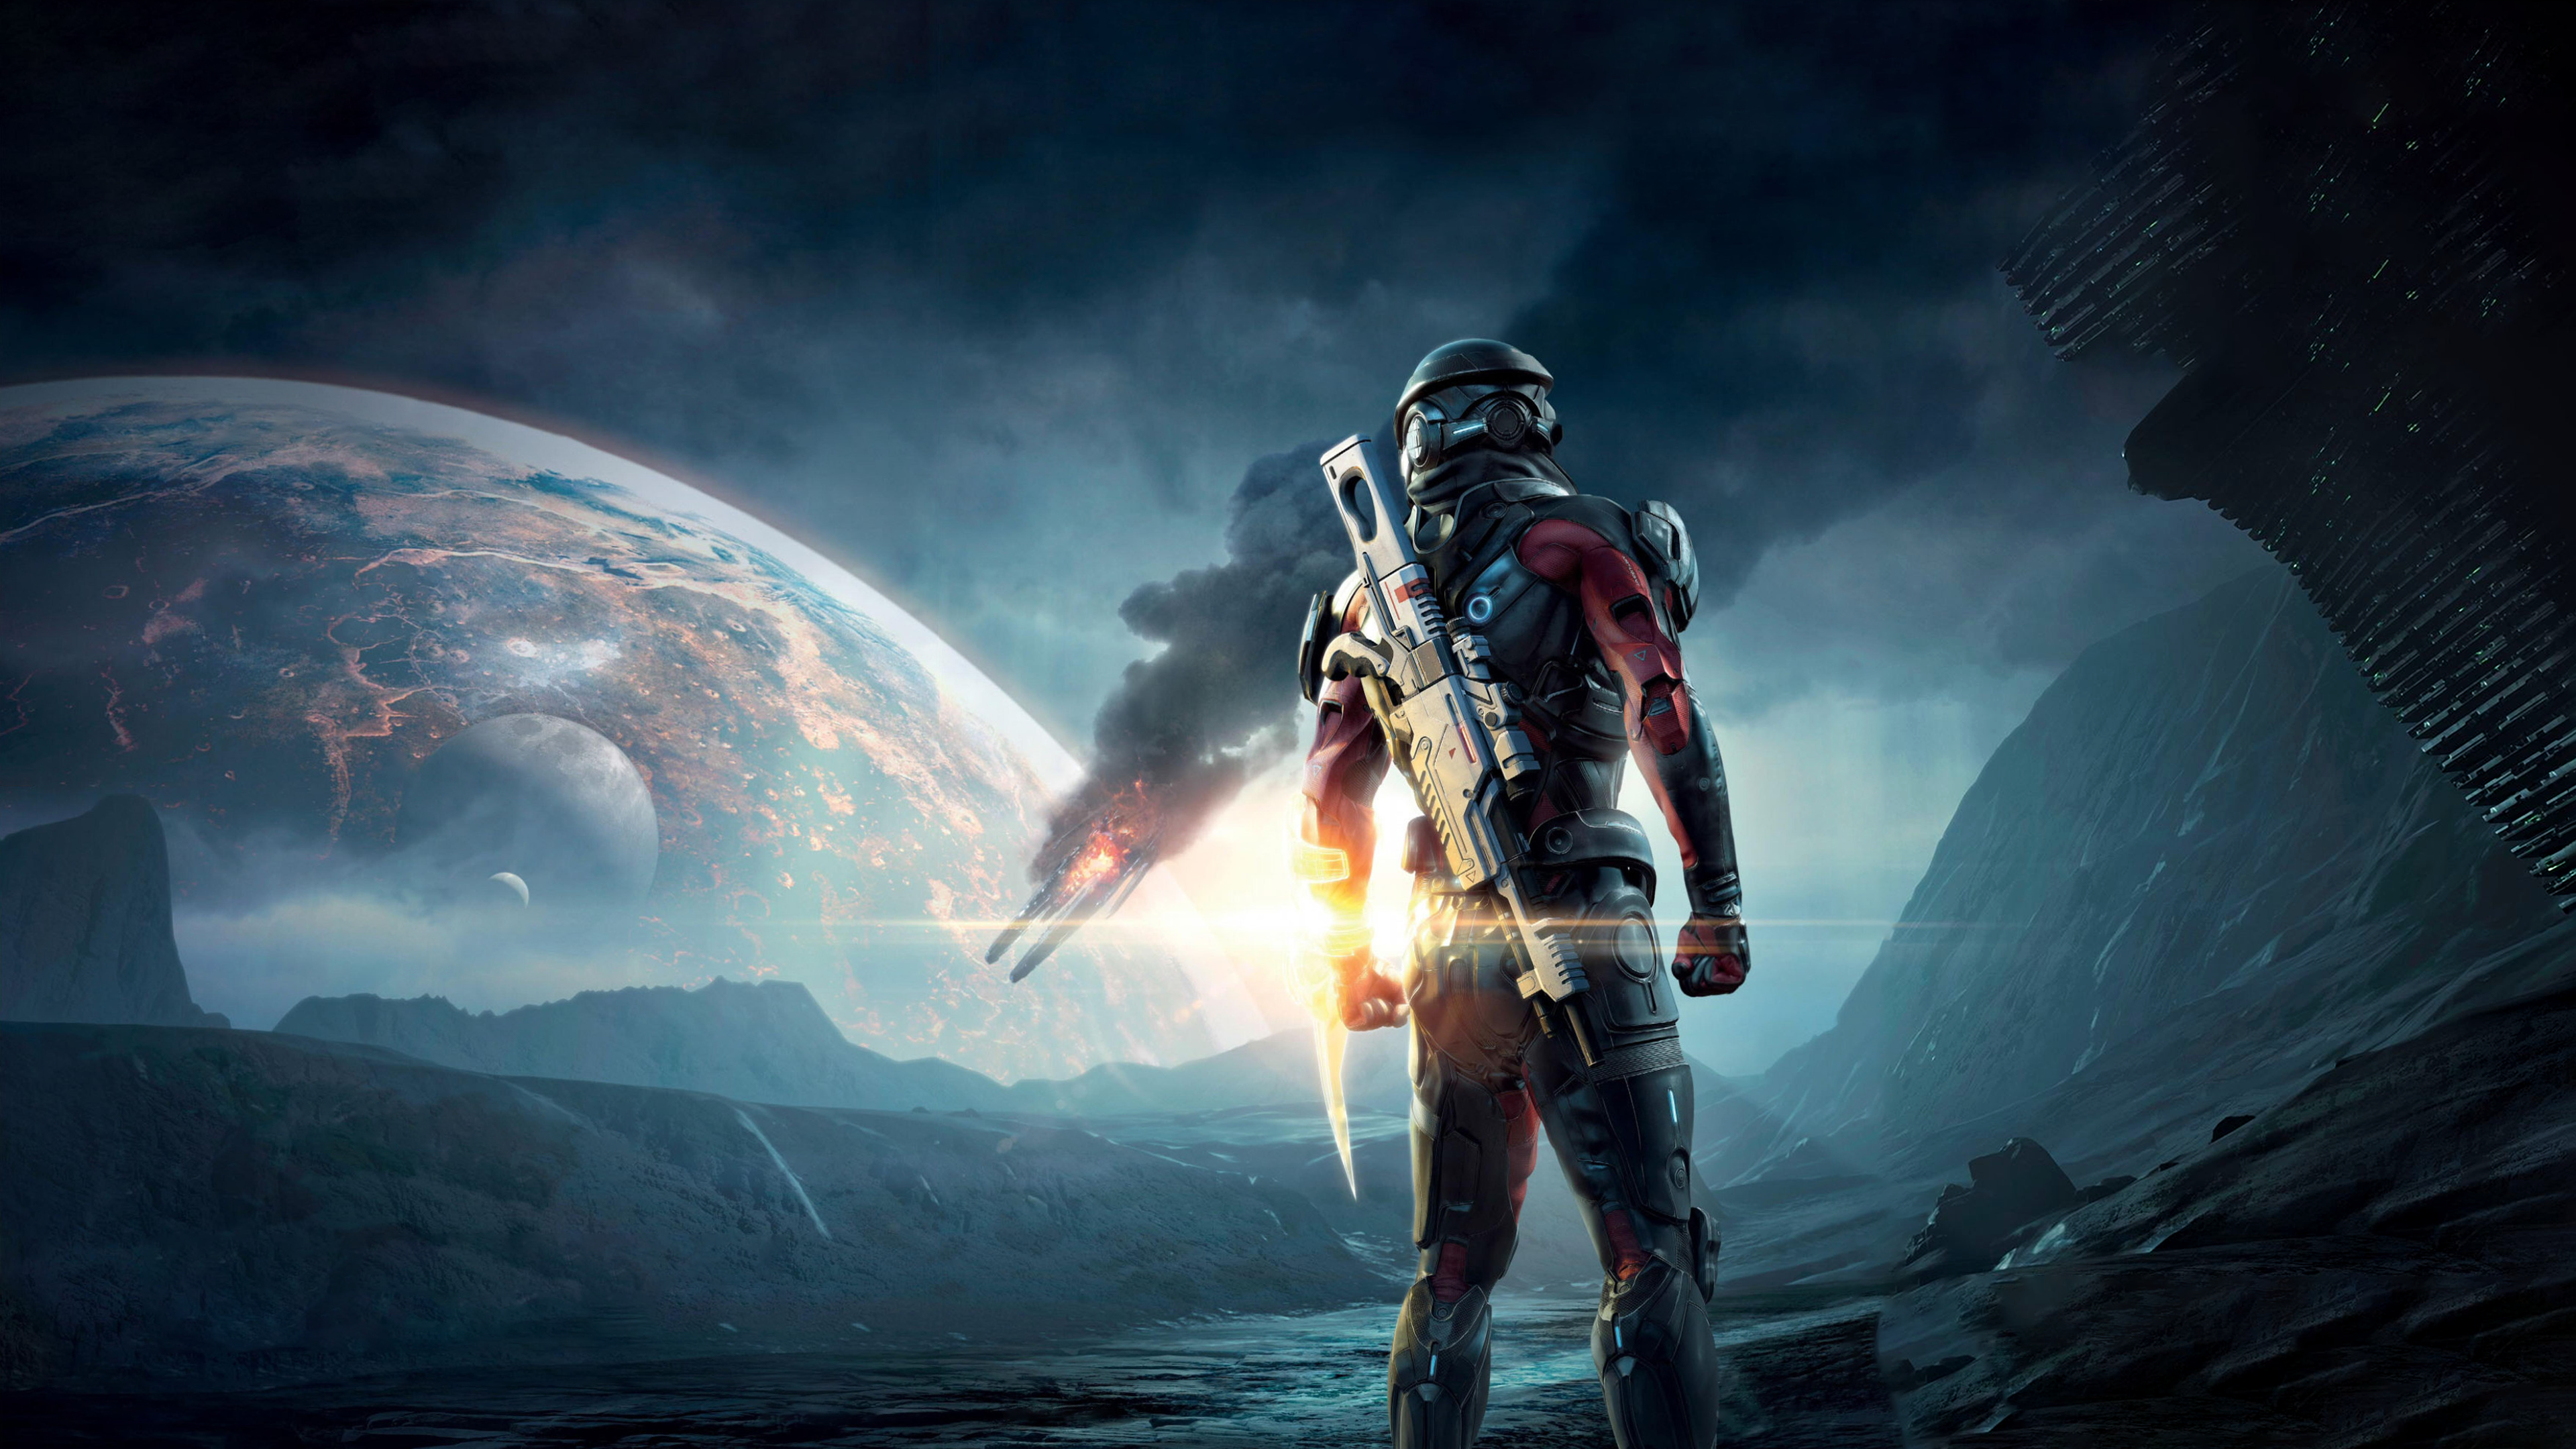 Mass Effect Andromeda Wallpaper: 80 Mass Effect: Andromeda HD Wallpapers